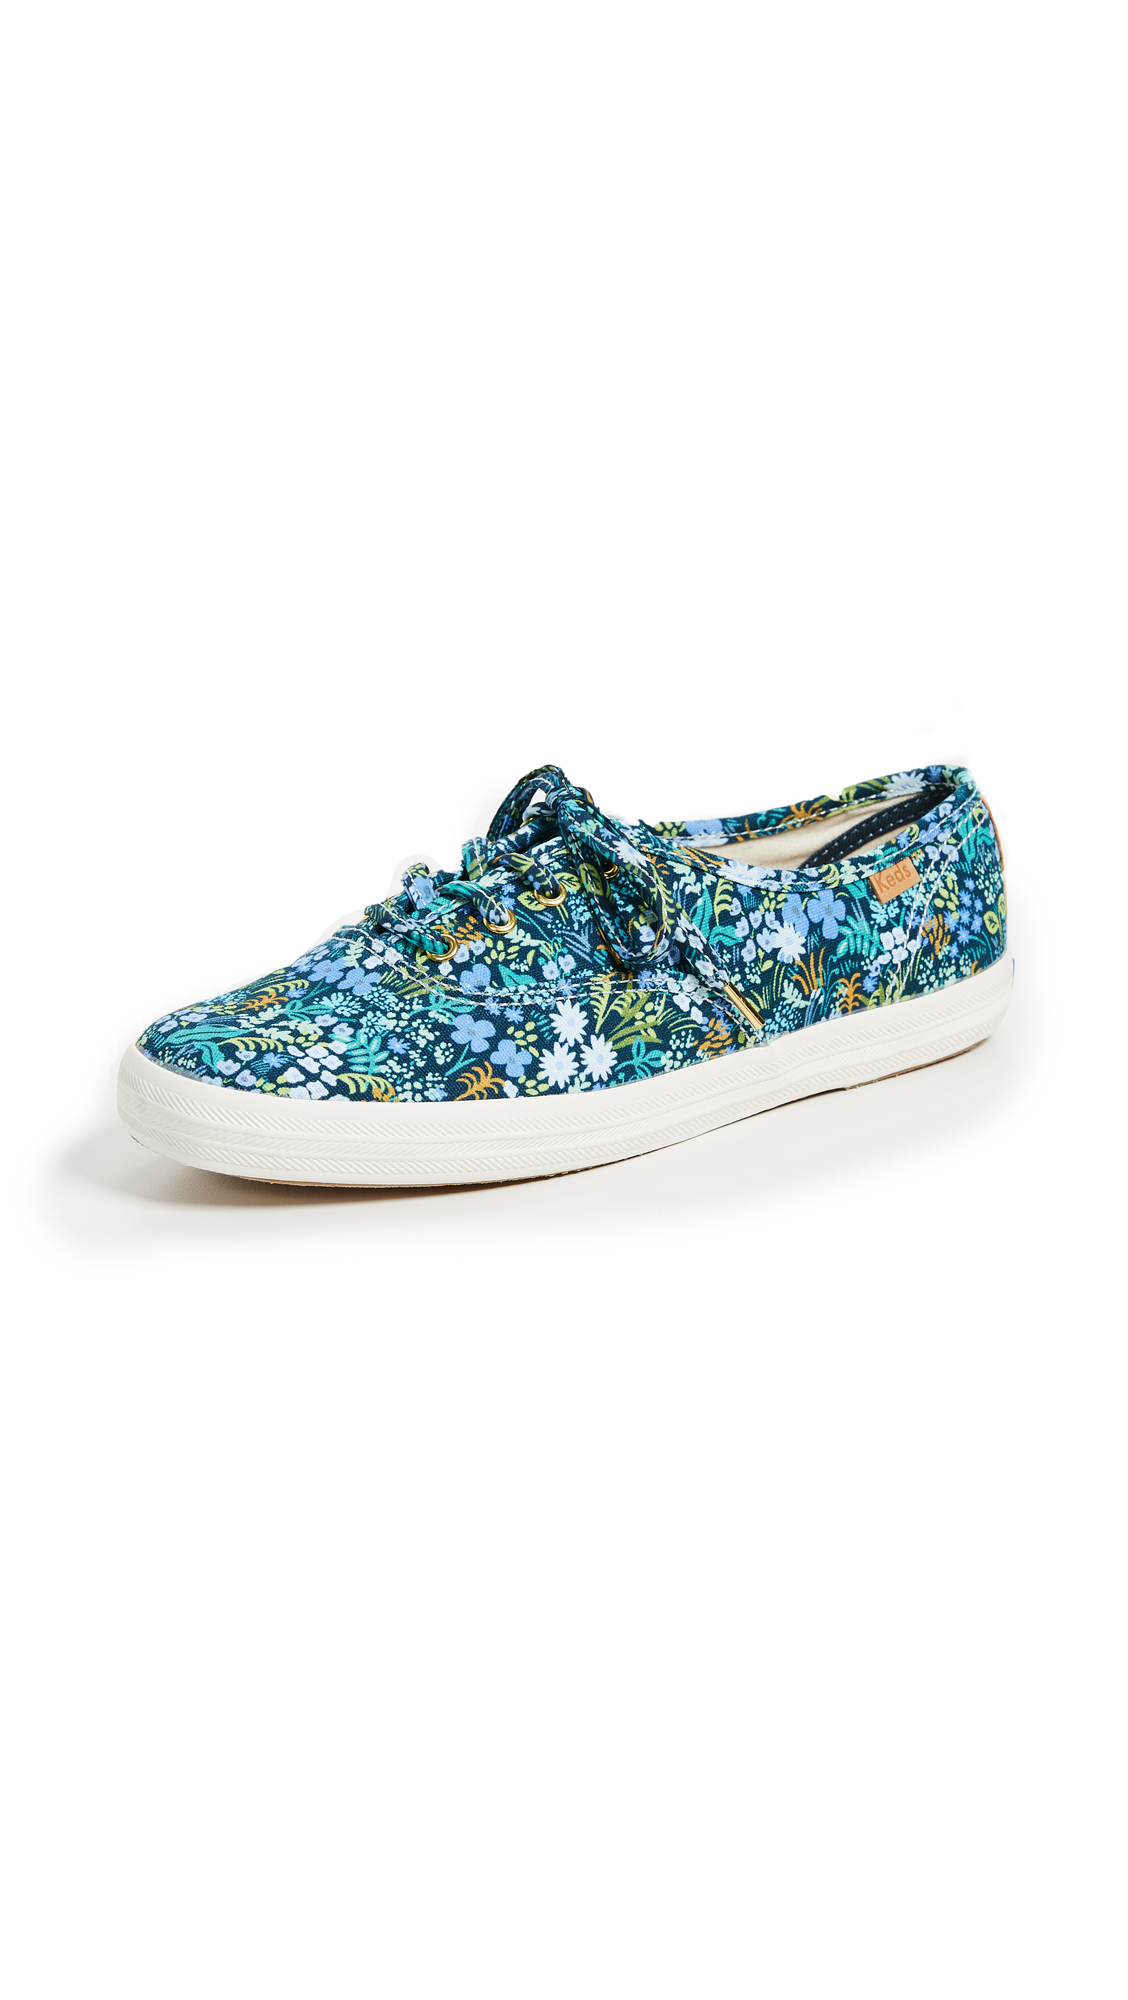 Keds x Rifle Paper CO CH Sneakers - Blue